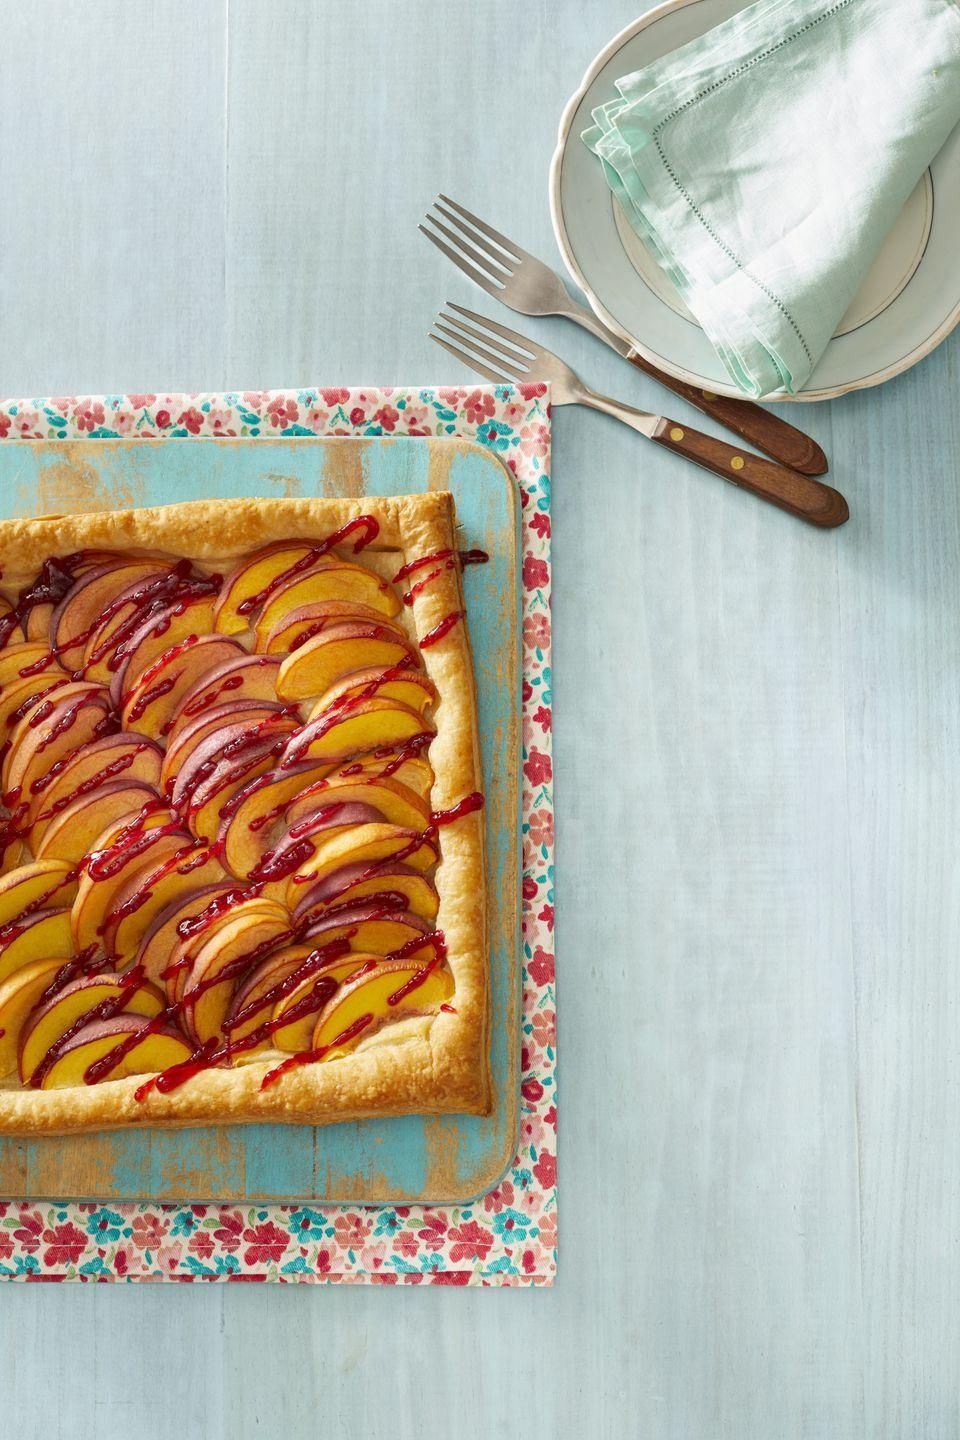 """<p>Puff pastry is the secret to this simple but stunning tart. The raspberry drizzle on top makes it extra special!</p><p><a href=""""https://www.thepioneerwoman.com/food-cooking/recipes/a32096774/peach-melba-tart-recipe/"""" rel=""""nofollow noopener"""" target=""""_blank"""" data-ylk=""""slk:Get Ree's recipe."""" class=""""link rapid-noclick-resp""""><strong>Get Ree's recipe.</strong></a></p><p><a class=""""link rapid-noclick-resp"""" href=""""https://go.redirectingat.com?id=74968X1596630&url=https%3A%2F%2Fwww.walmart.com%2Fsearch%2F%3Fquery%3Dpioneer%2Bwoman%2Bcutting%2Bboard&sref=https%3A%2F%2Fwww.thepioneerwoman.com%2Ffood-cooking%2Frecipes%2Fg36382592%2Fpeach-desserts%2F"""" rel=""""nofollow noopener"""" target=""""_blank"""" data-ylk=""""slk:SHOP CUTTING BOARDS"""">SHOP CUTTING BOARDS</a></p>"""